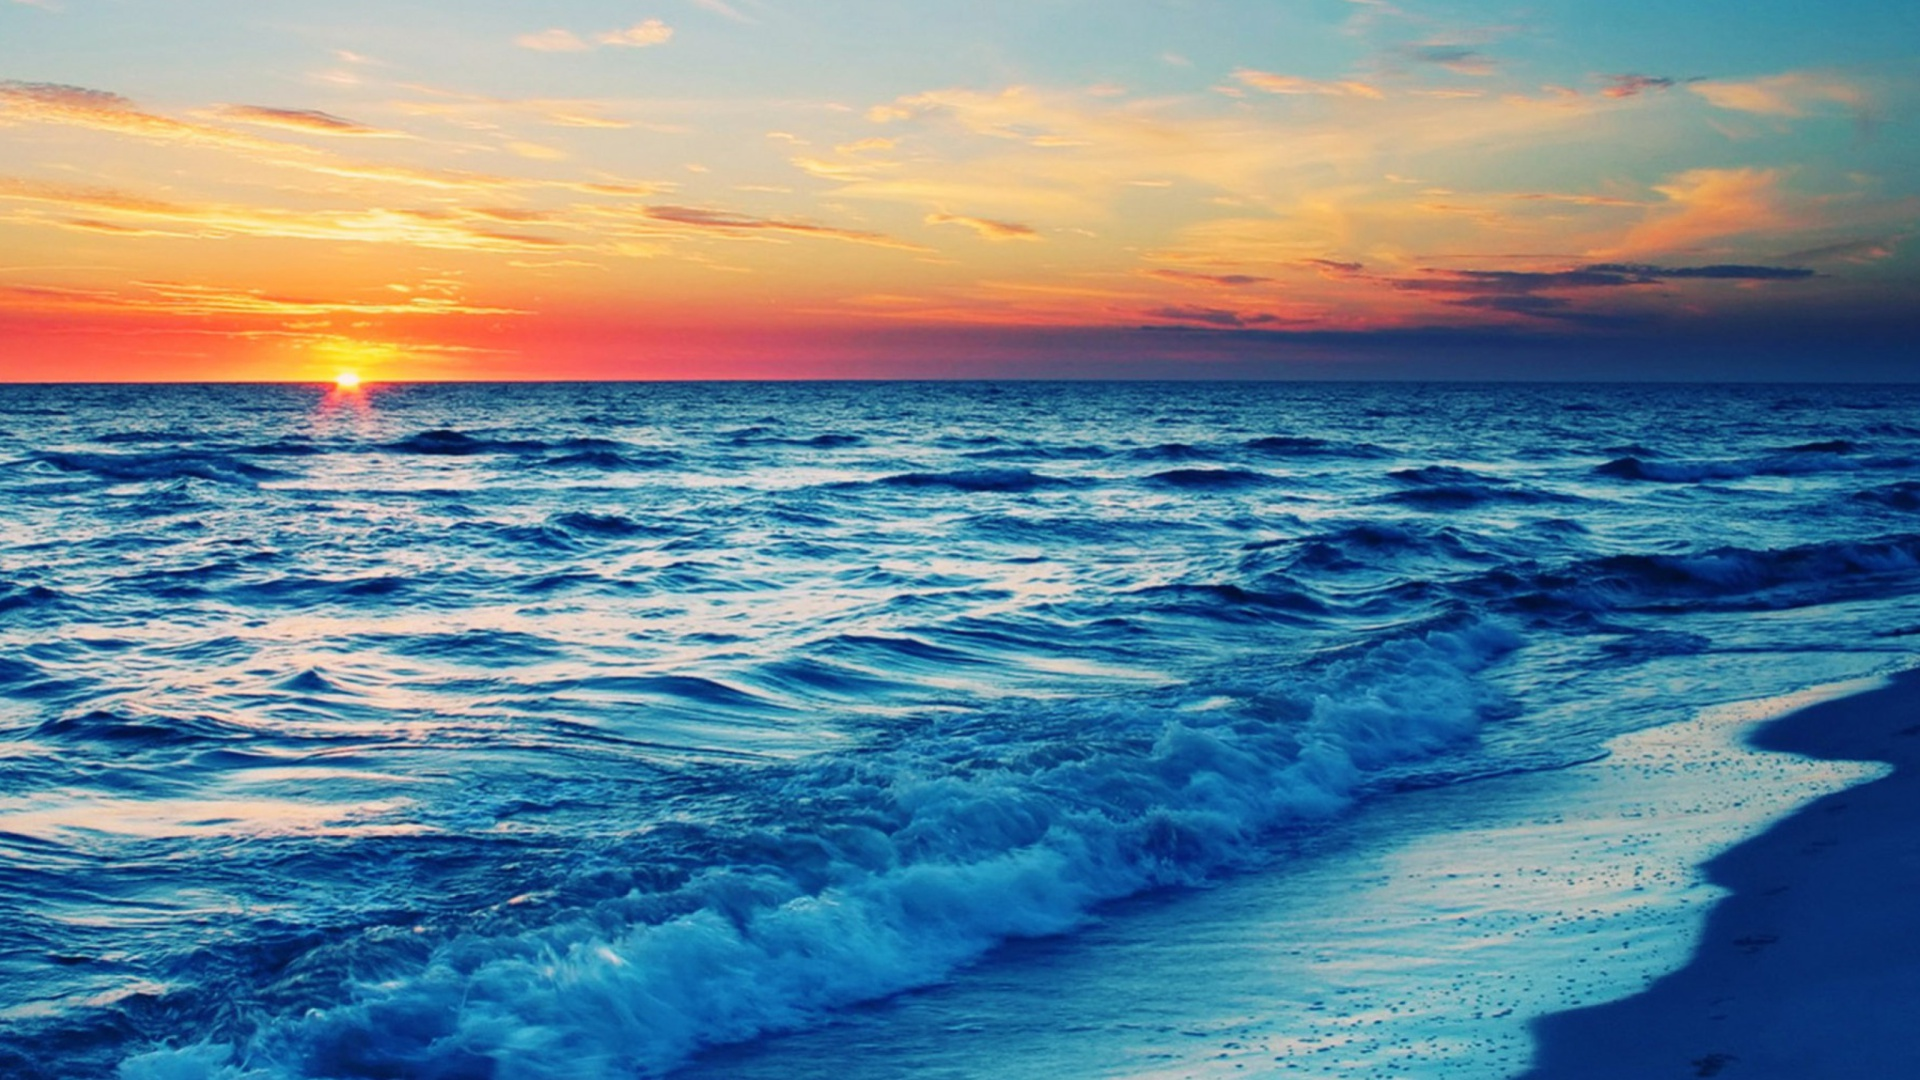 Ocean screensavers and wallpaper wallpapersafari - Ocean pictures for desktop background ...